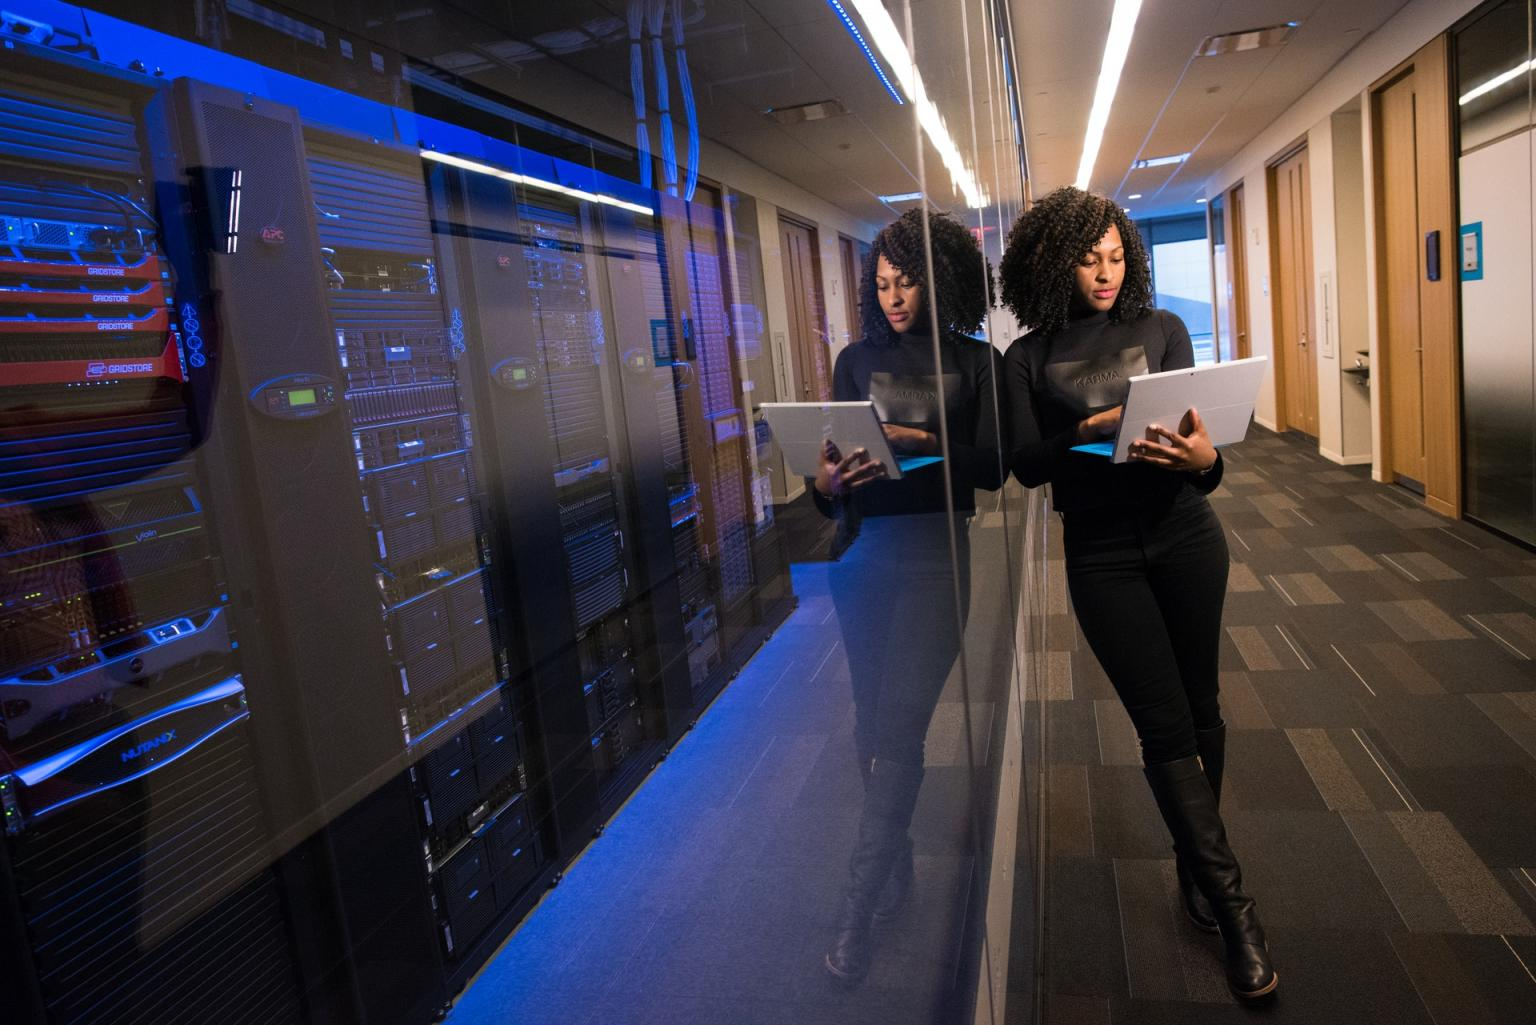 A data scientist stands outside a network systems room.